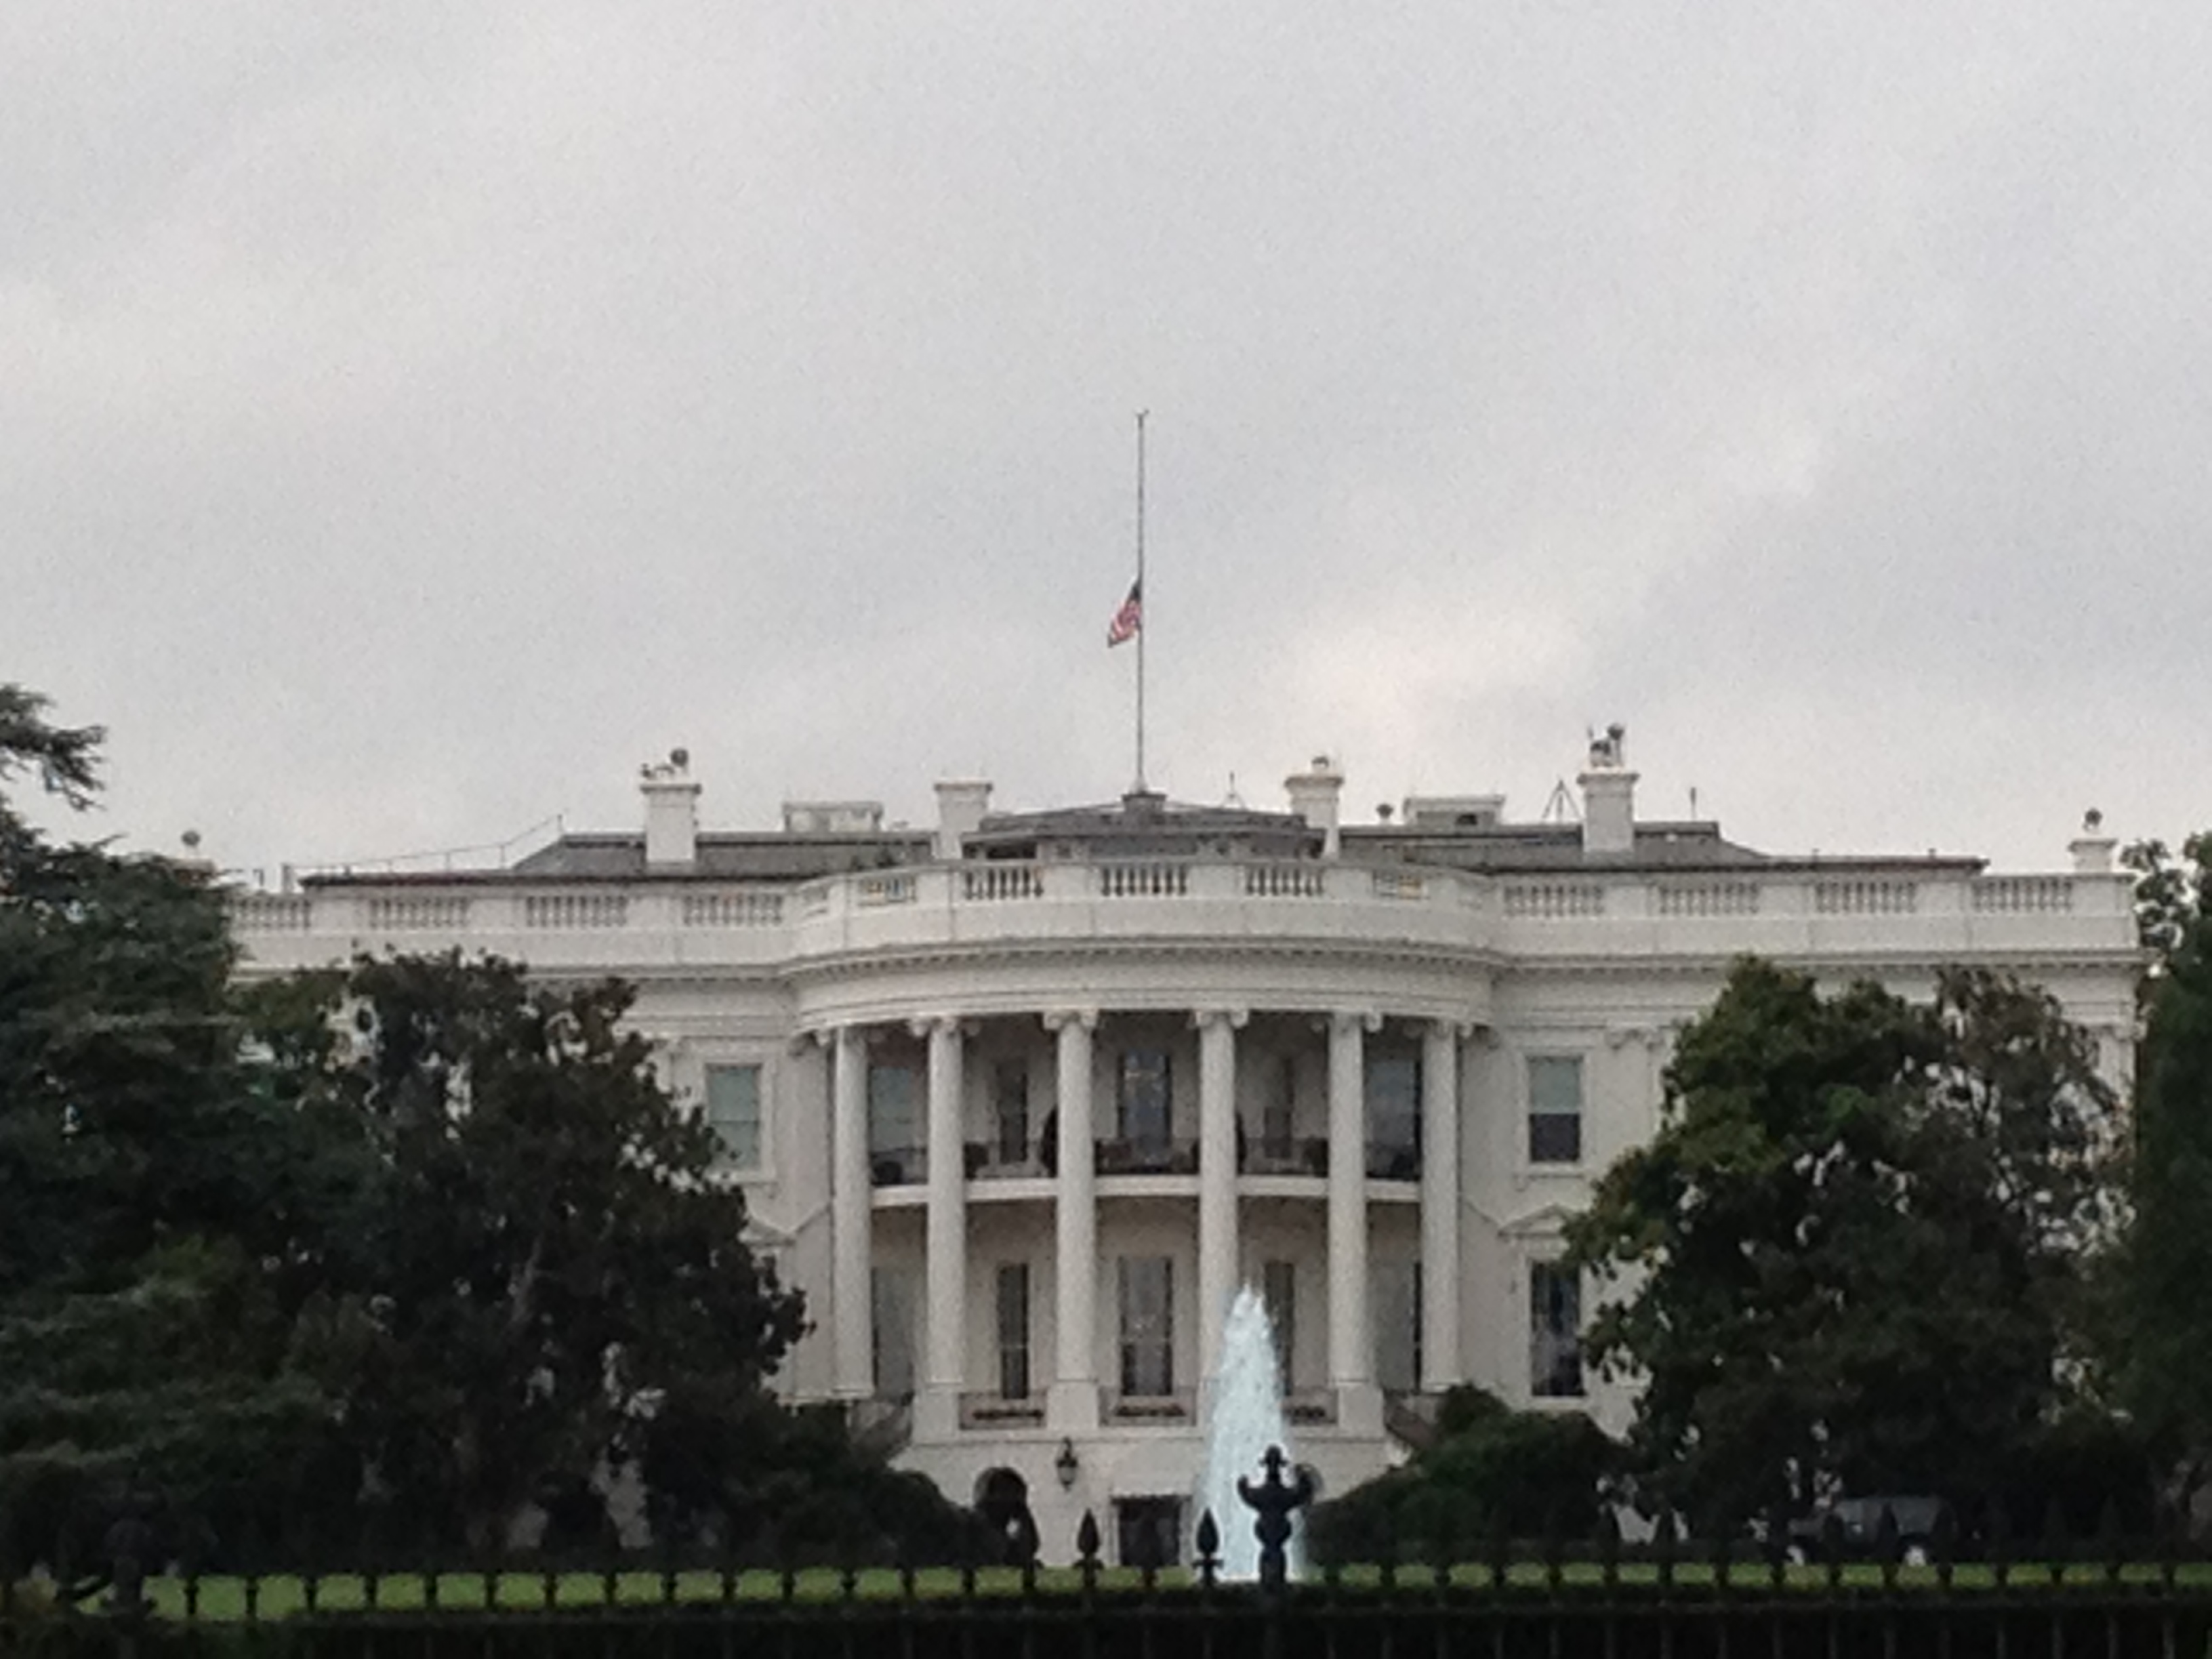 Why are the flags at half-mast?